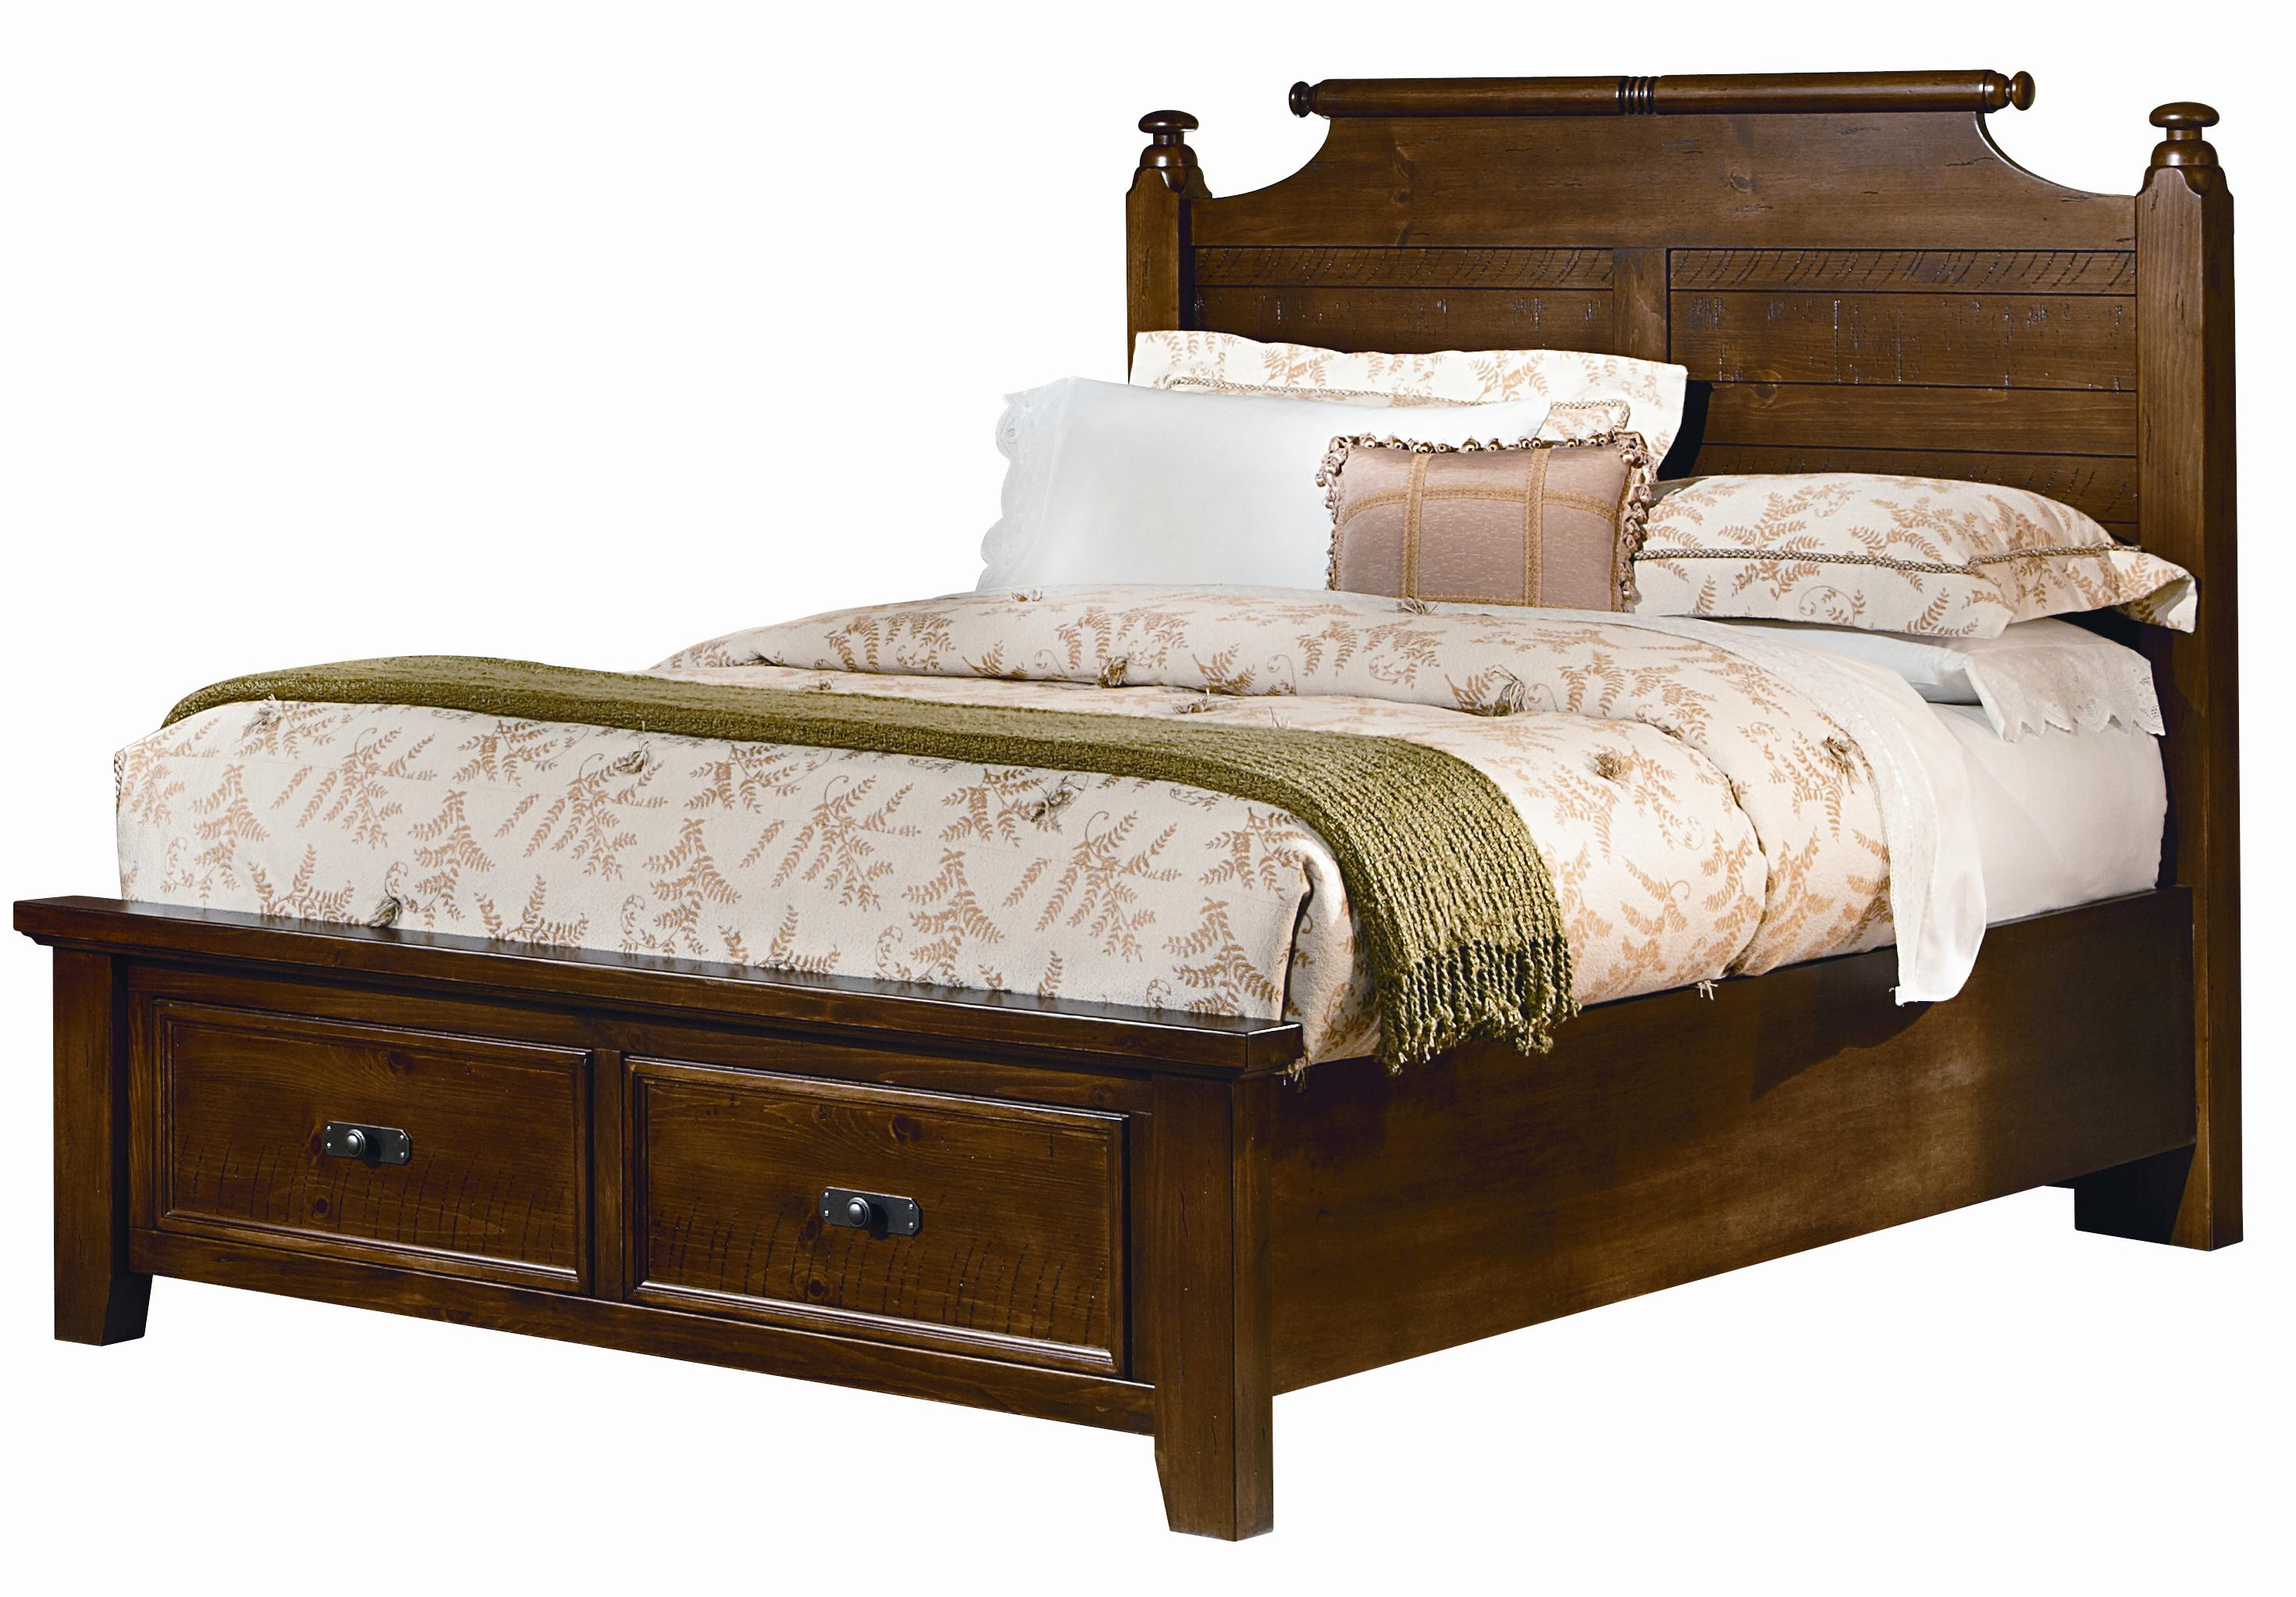 Vaughan Bassett Timber Mill Queen Poster Bed With Storage Drawers - Item Number: BB58-557+050B+502+555T